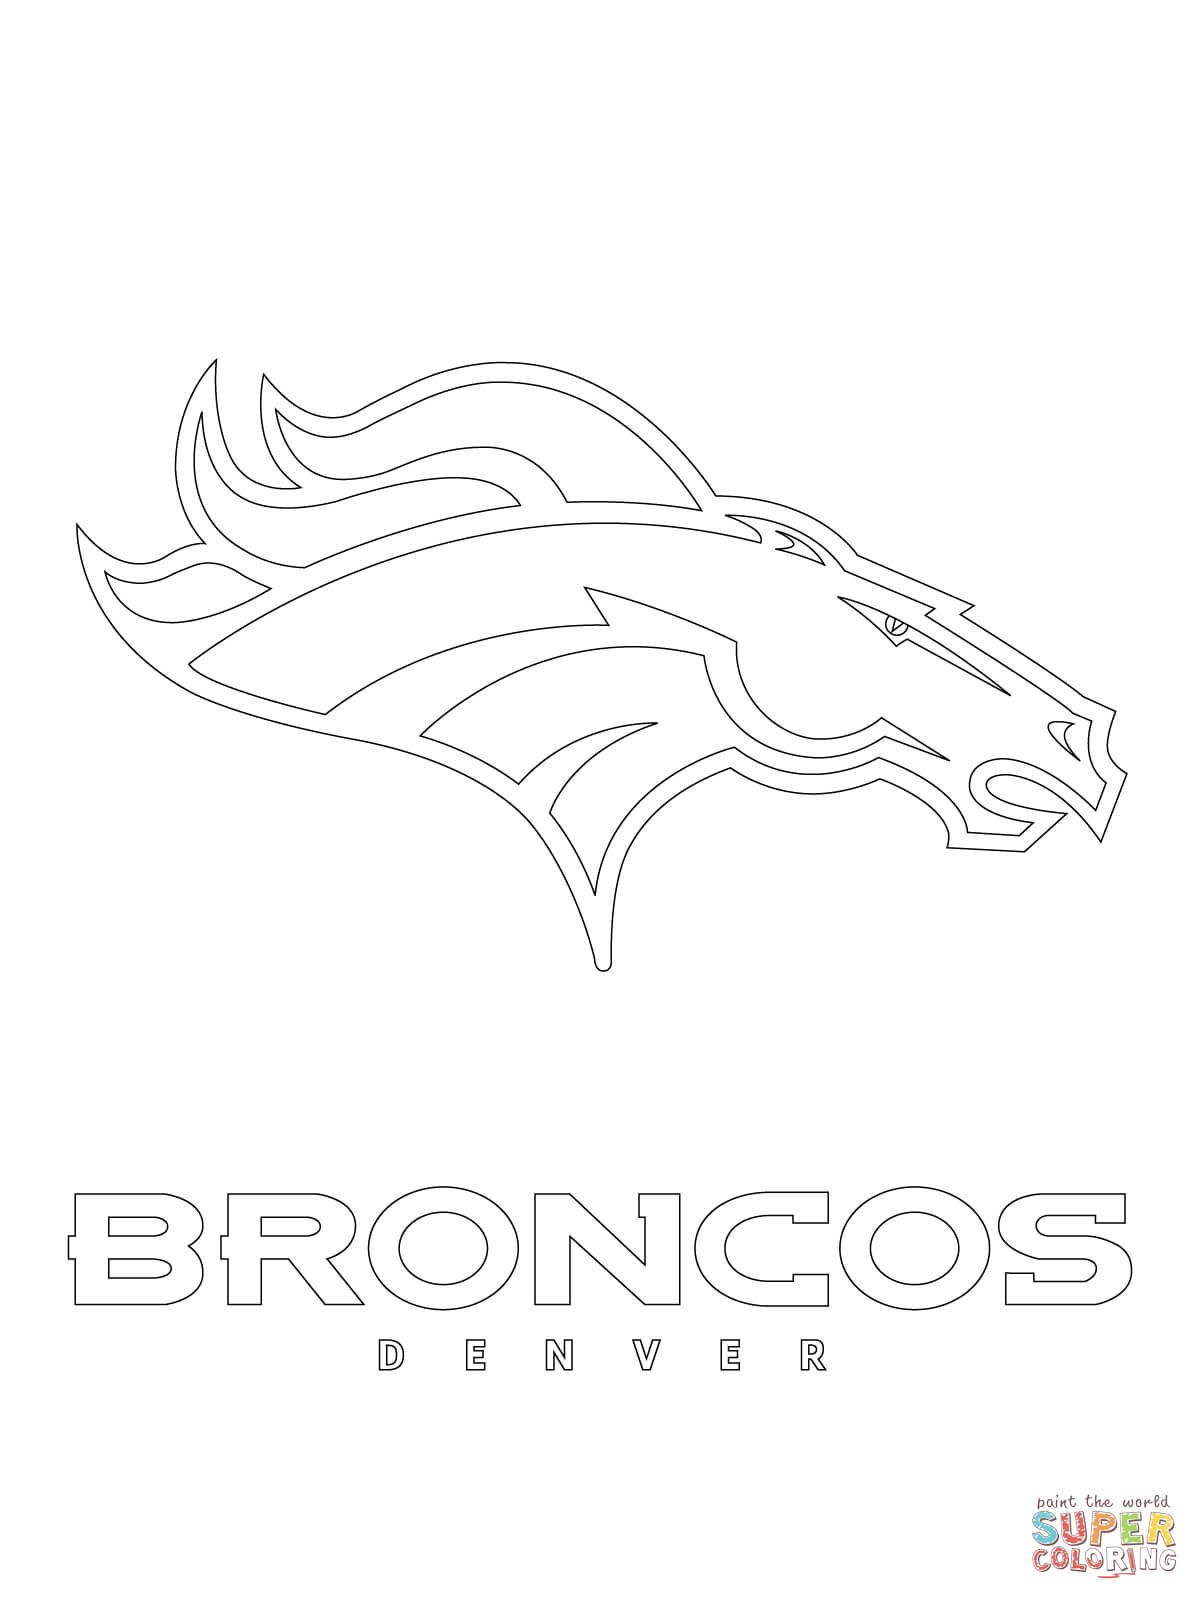 Denver Broncos Logo | Super Coloring | Broncos | Pinterest